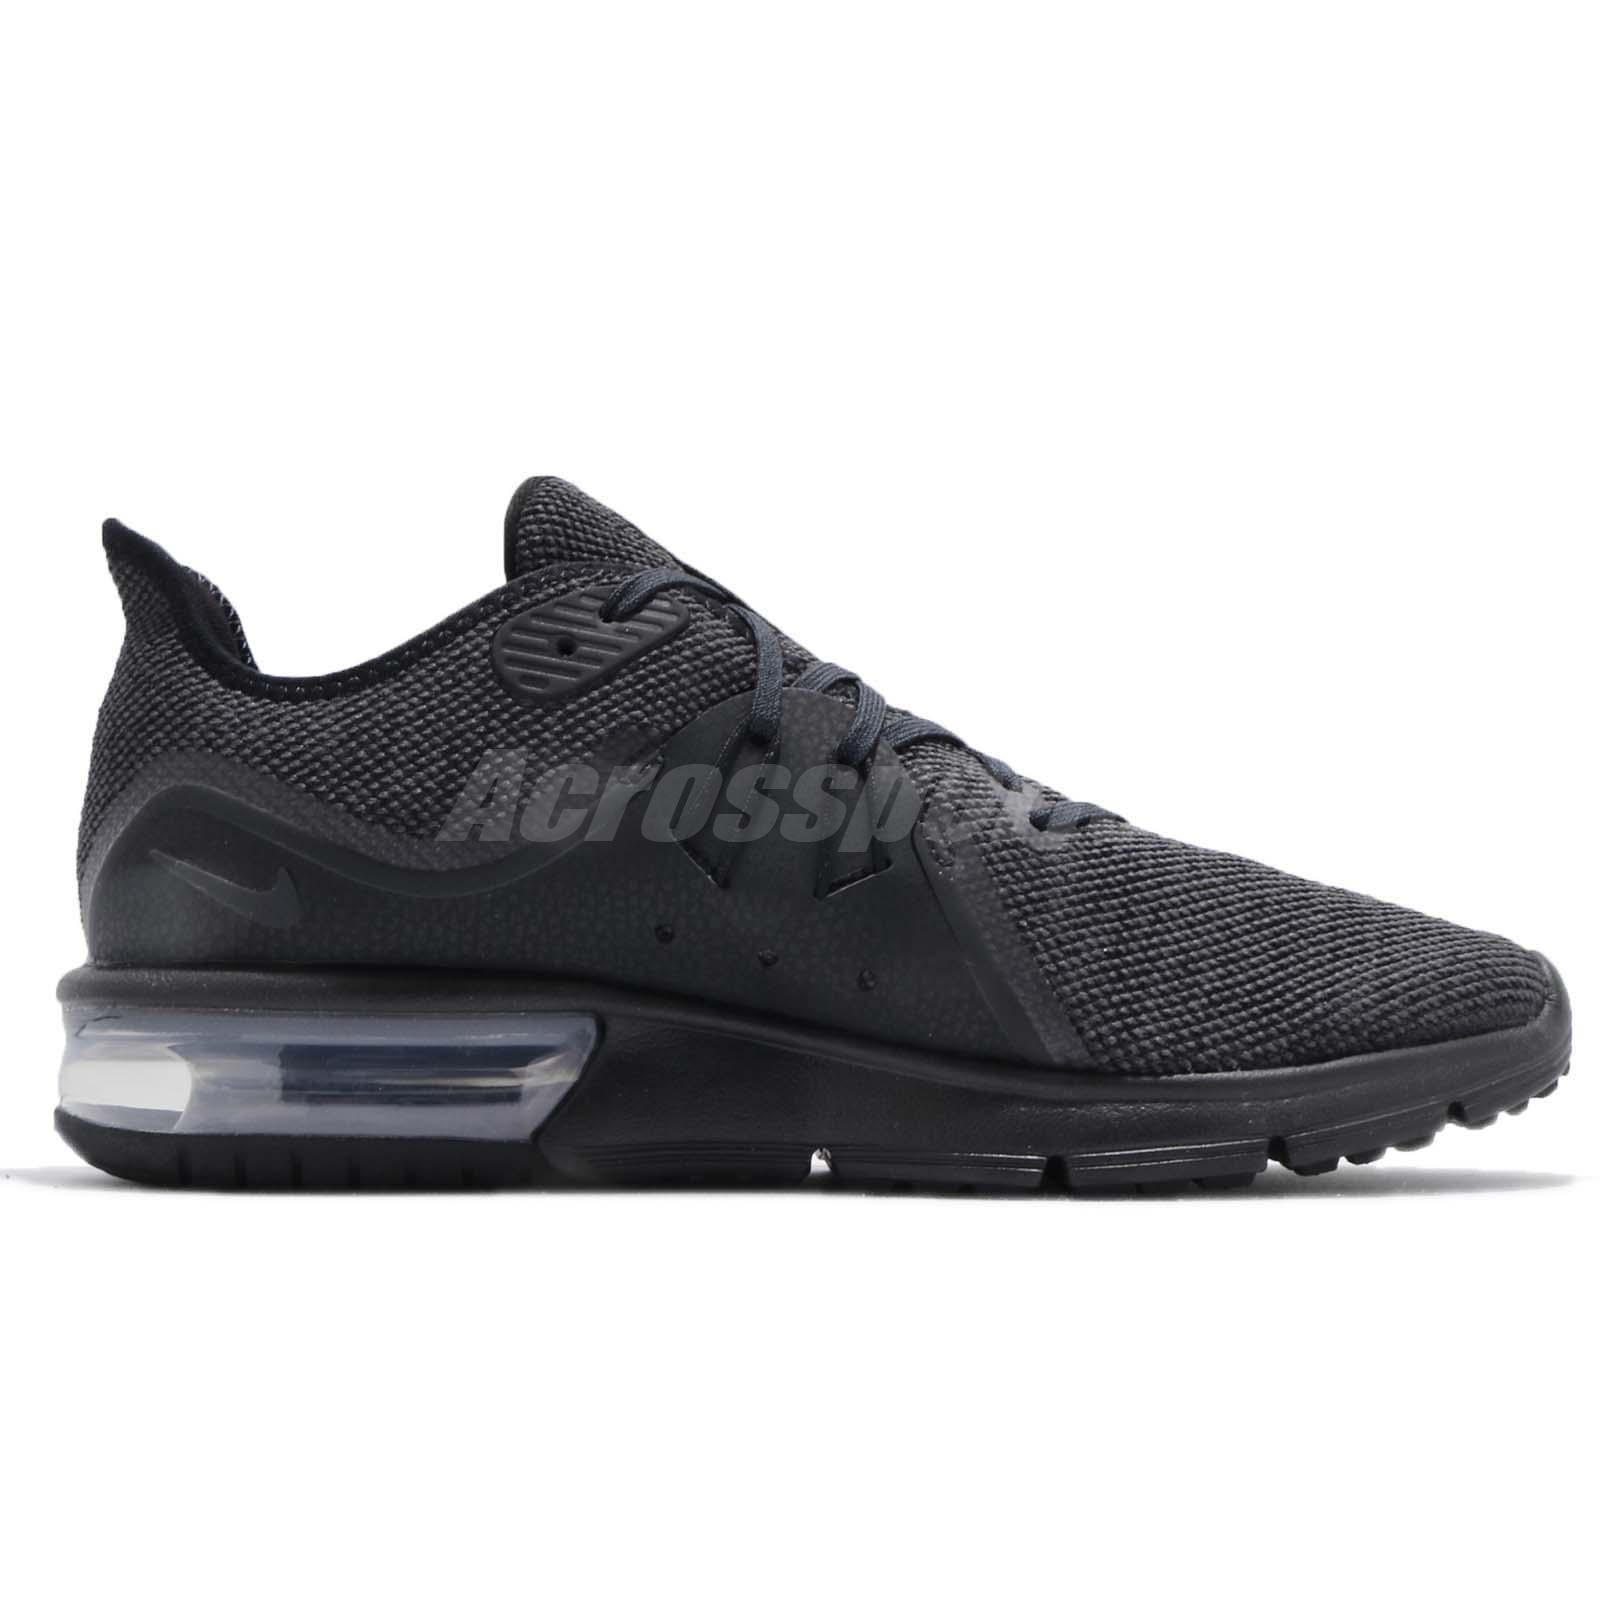 1859f4326d Nike Air Max Sequent 3 III Black Anthracite Grey Men Running Shoes ...